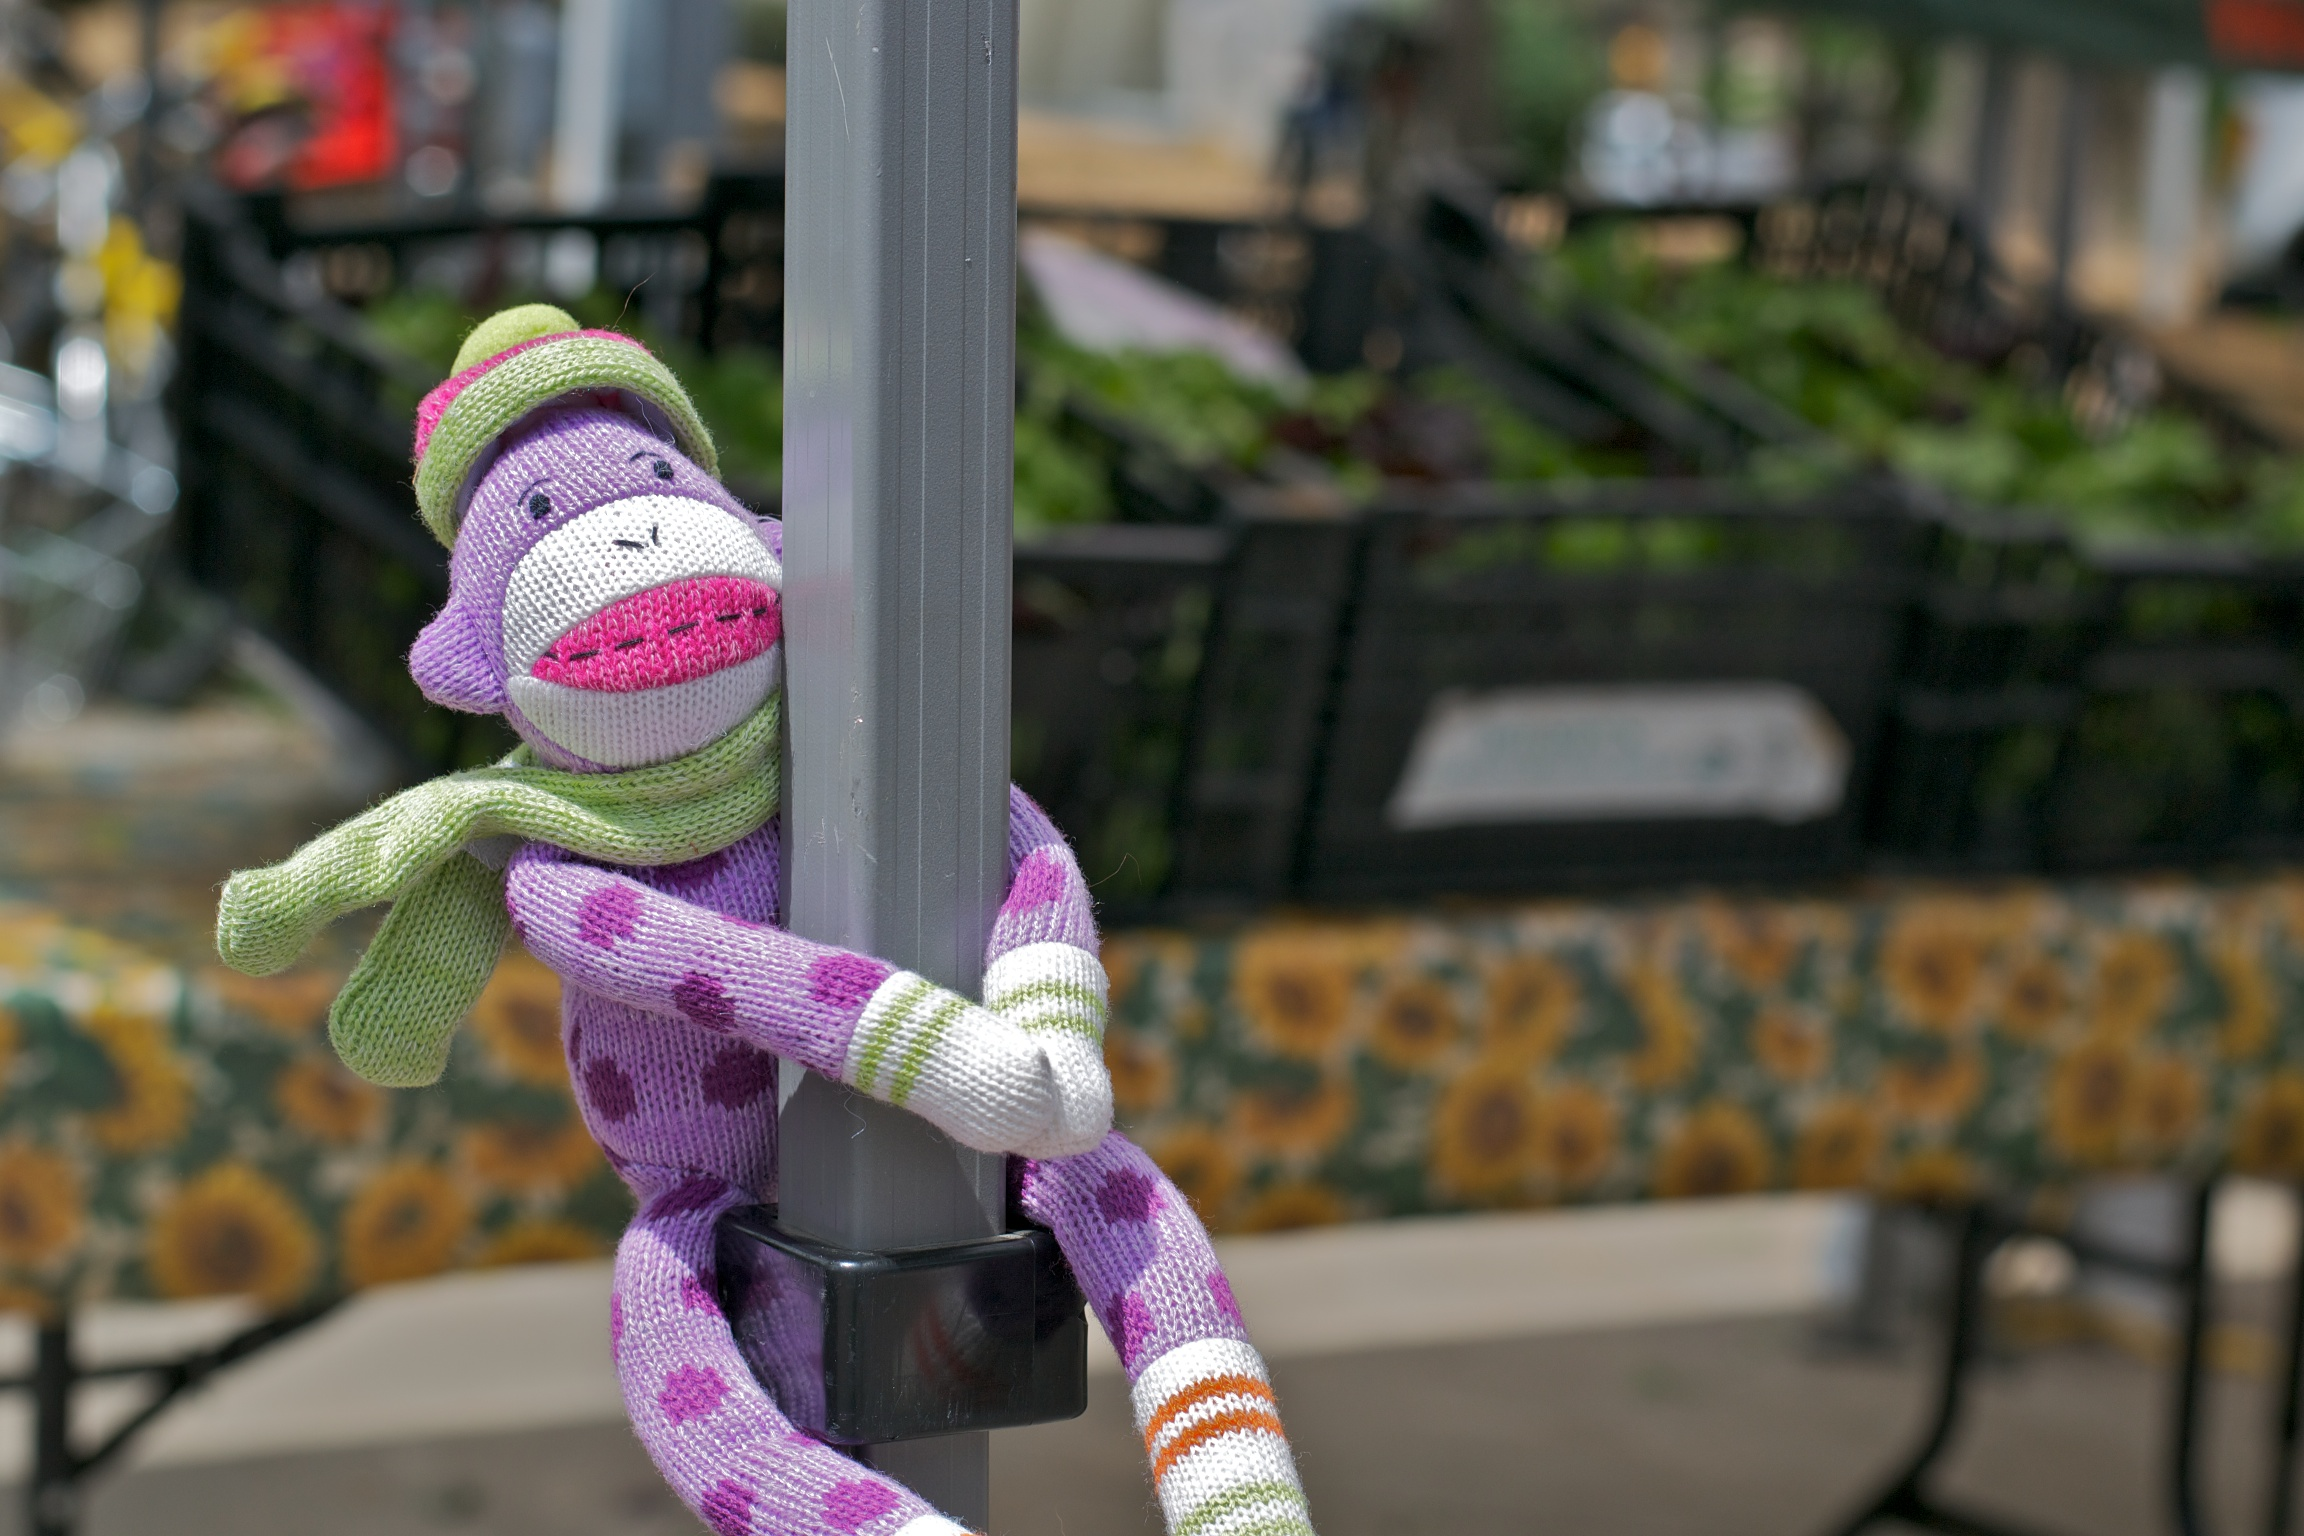 The adventures of Dottie, the sock monkey: Boulder on a Saturday morning